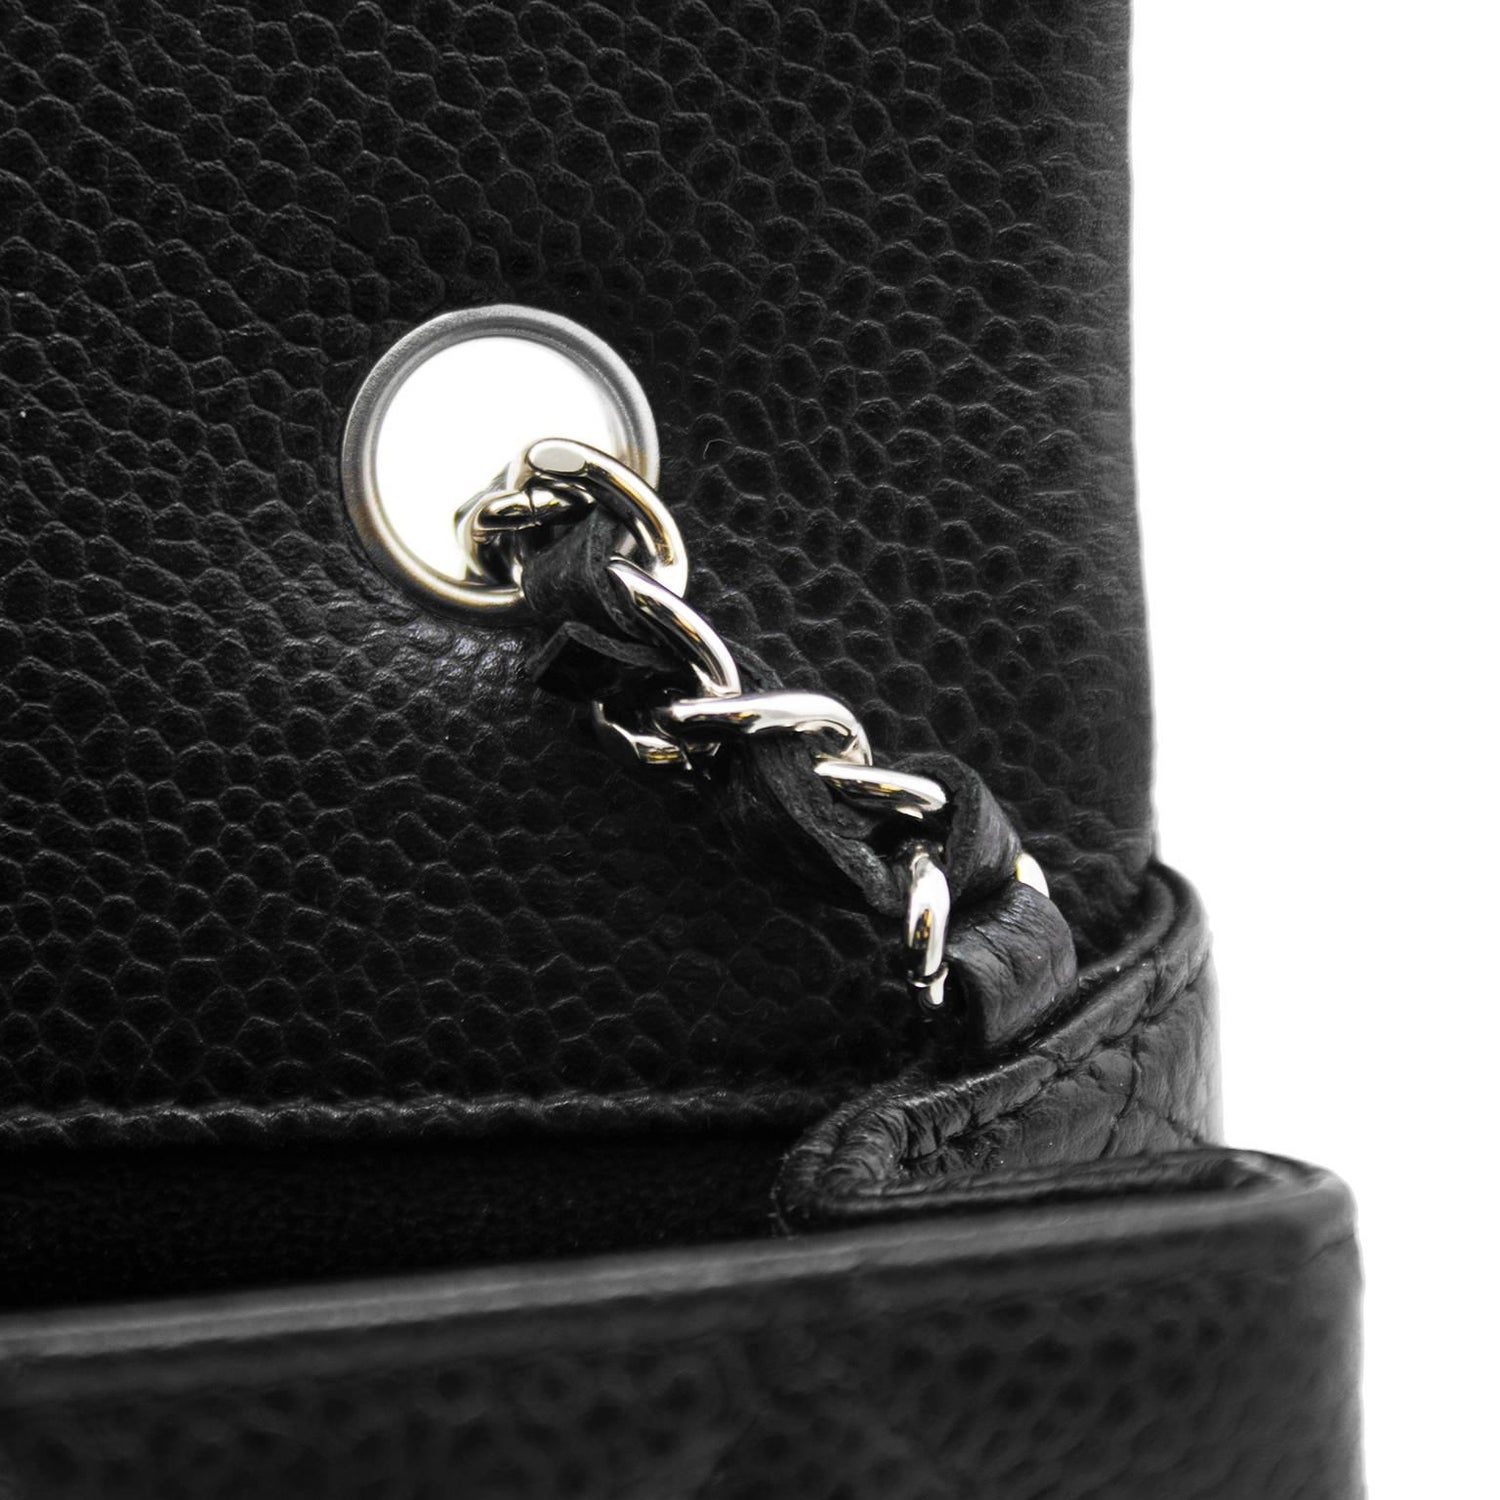 f97ceb12053aab 2013 Chanel Black Quilted Caviar Leather Chanel Classic Mini Flap Bag at  1stdibs